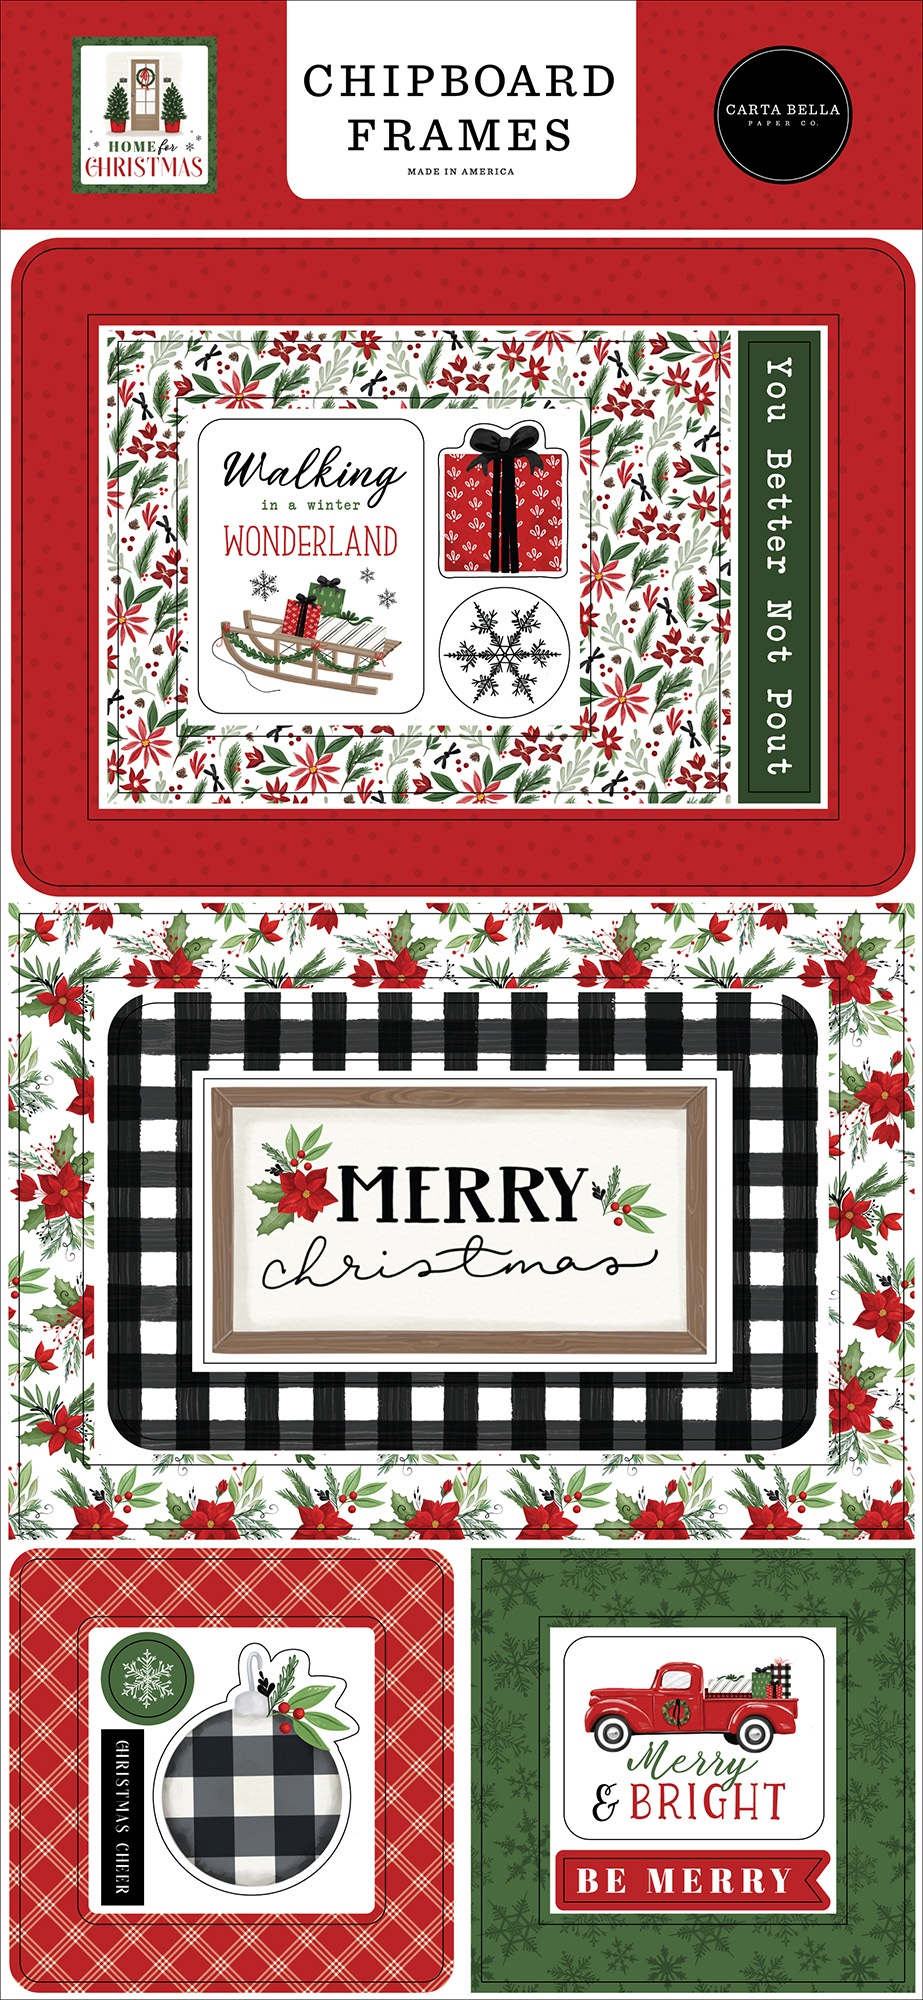 Home For Christmas Chipboard 6X13- Frames